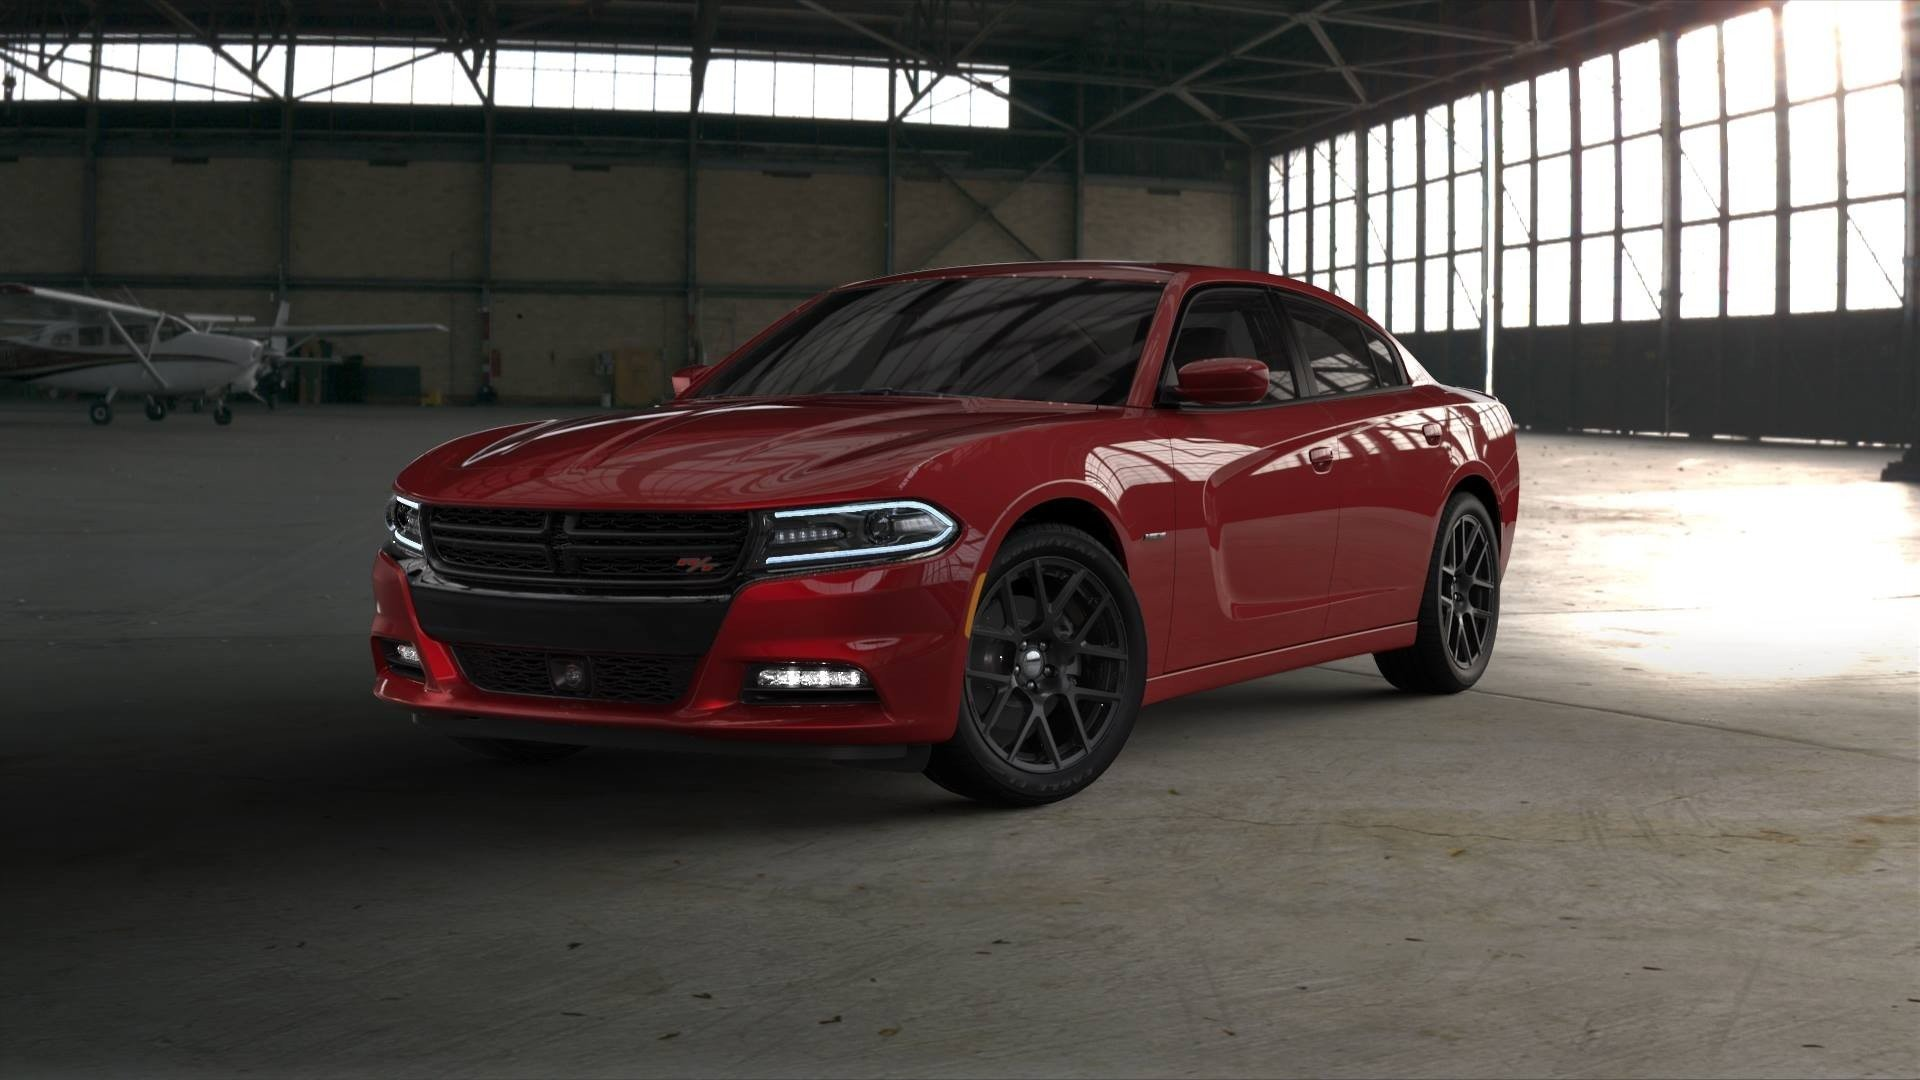 Dodge Charger Hellcat Cars